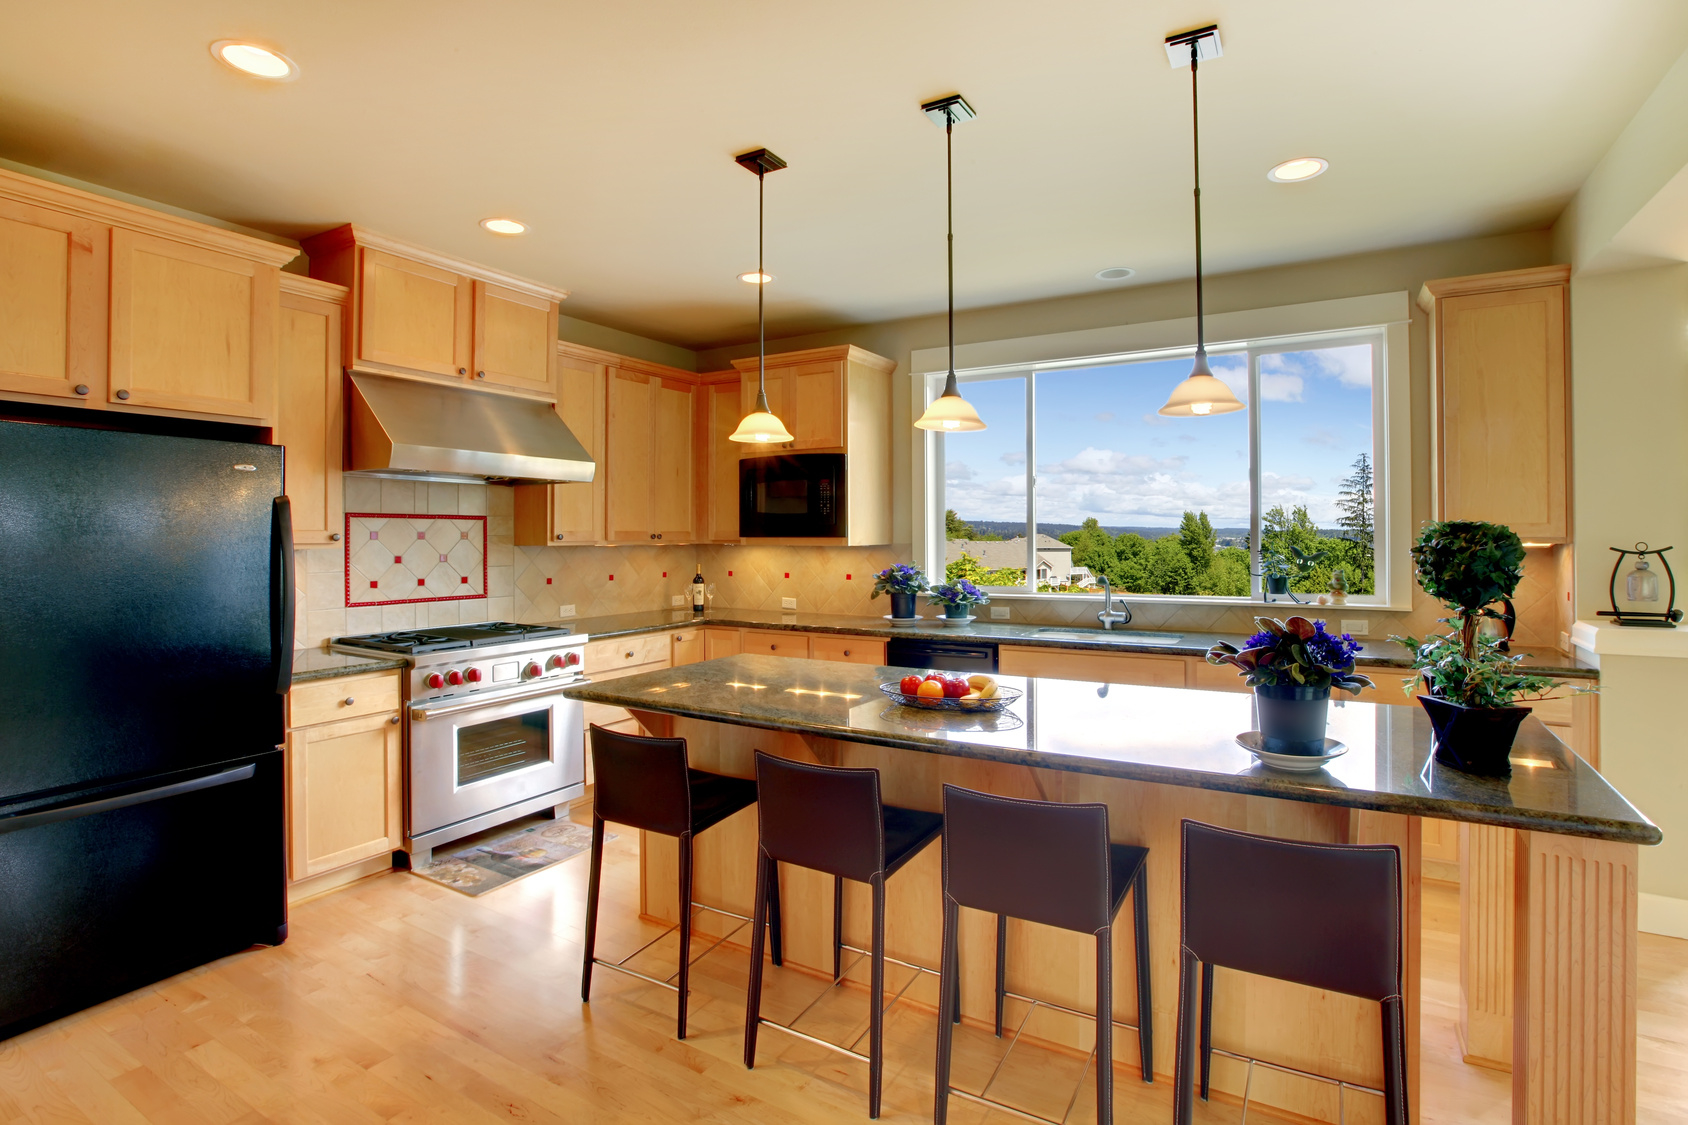 Remodeling Kitchen Kitchen Cabinet Remodeling Repair In Downey Ca By Superpages